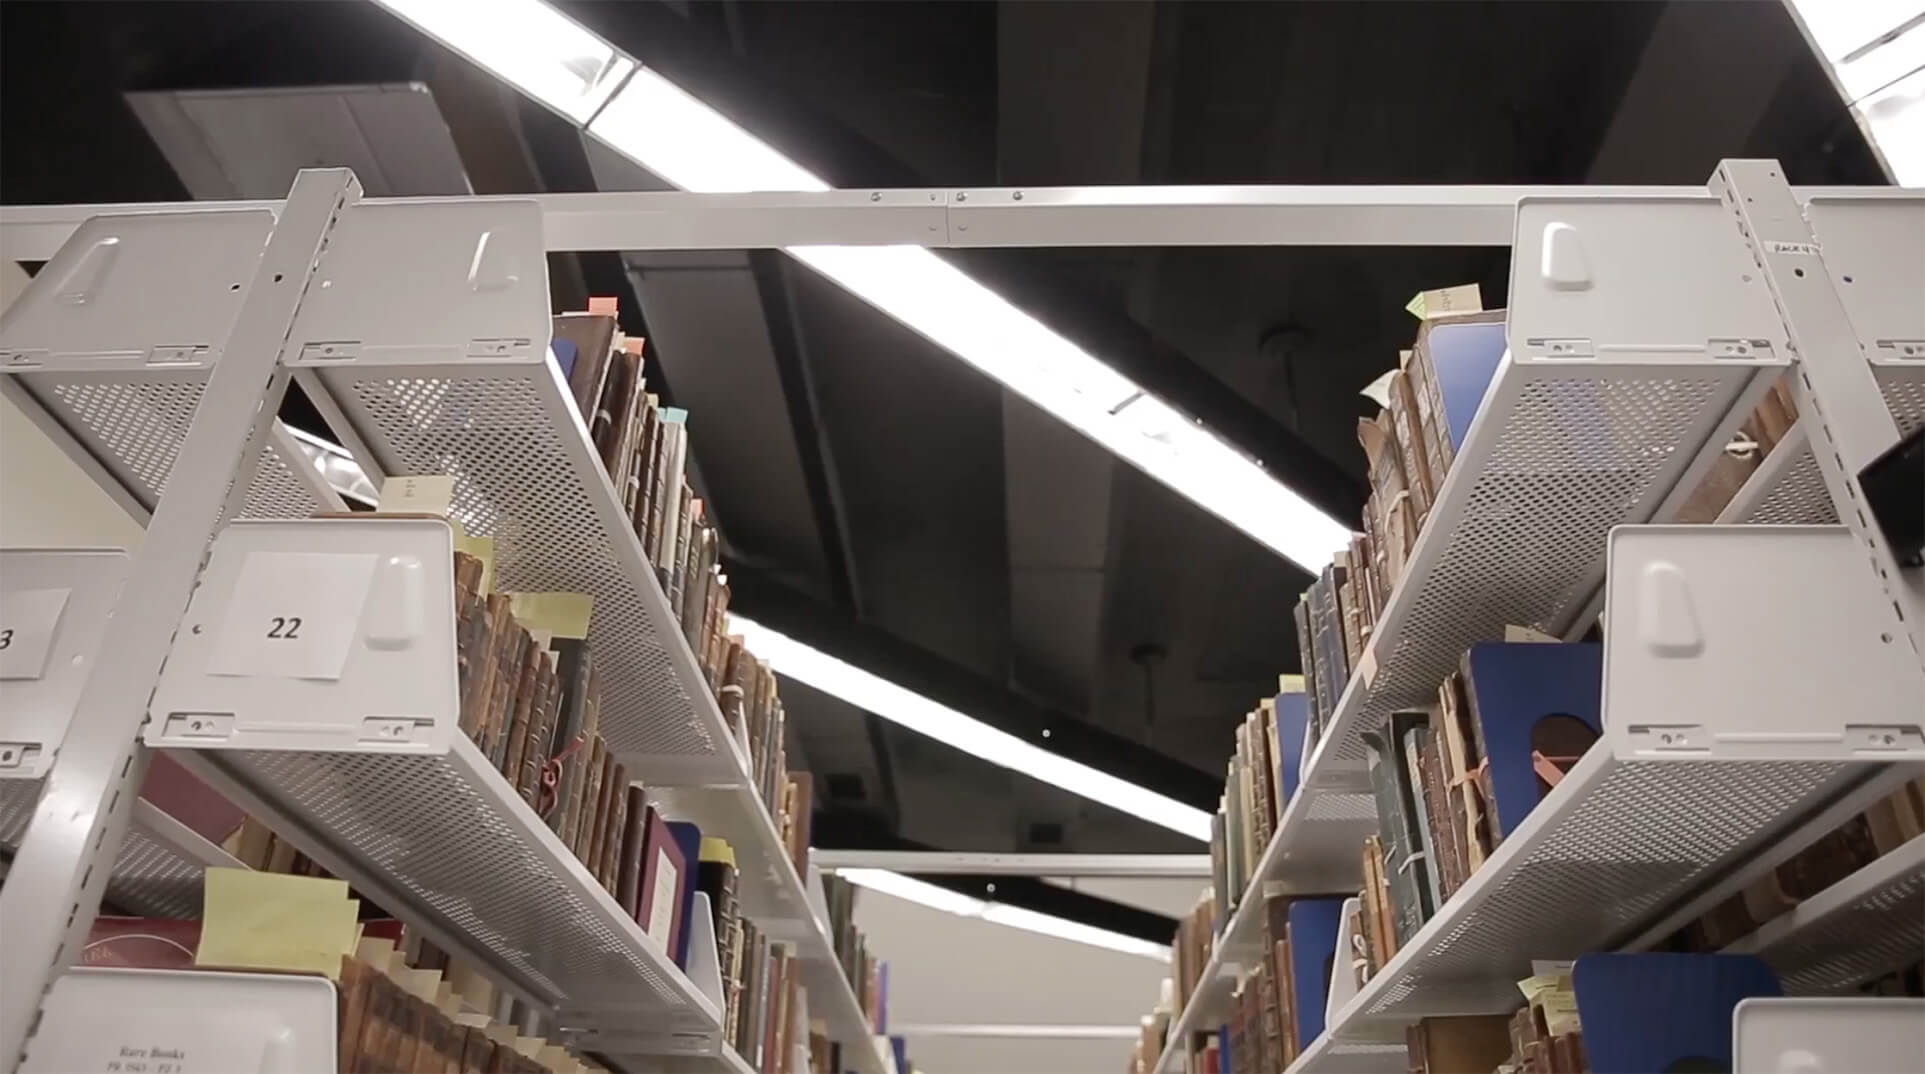 Library books storage on Perforated cantilever shelving at Gettysburg College